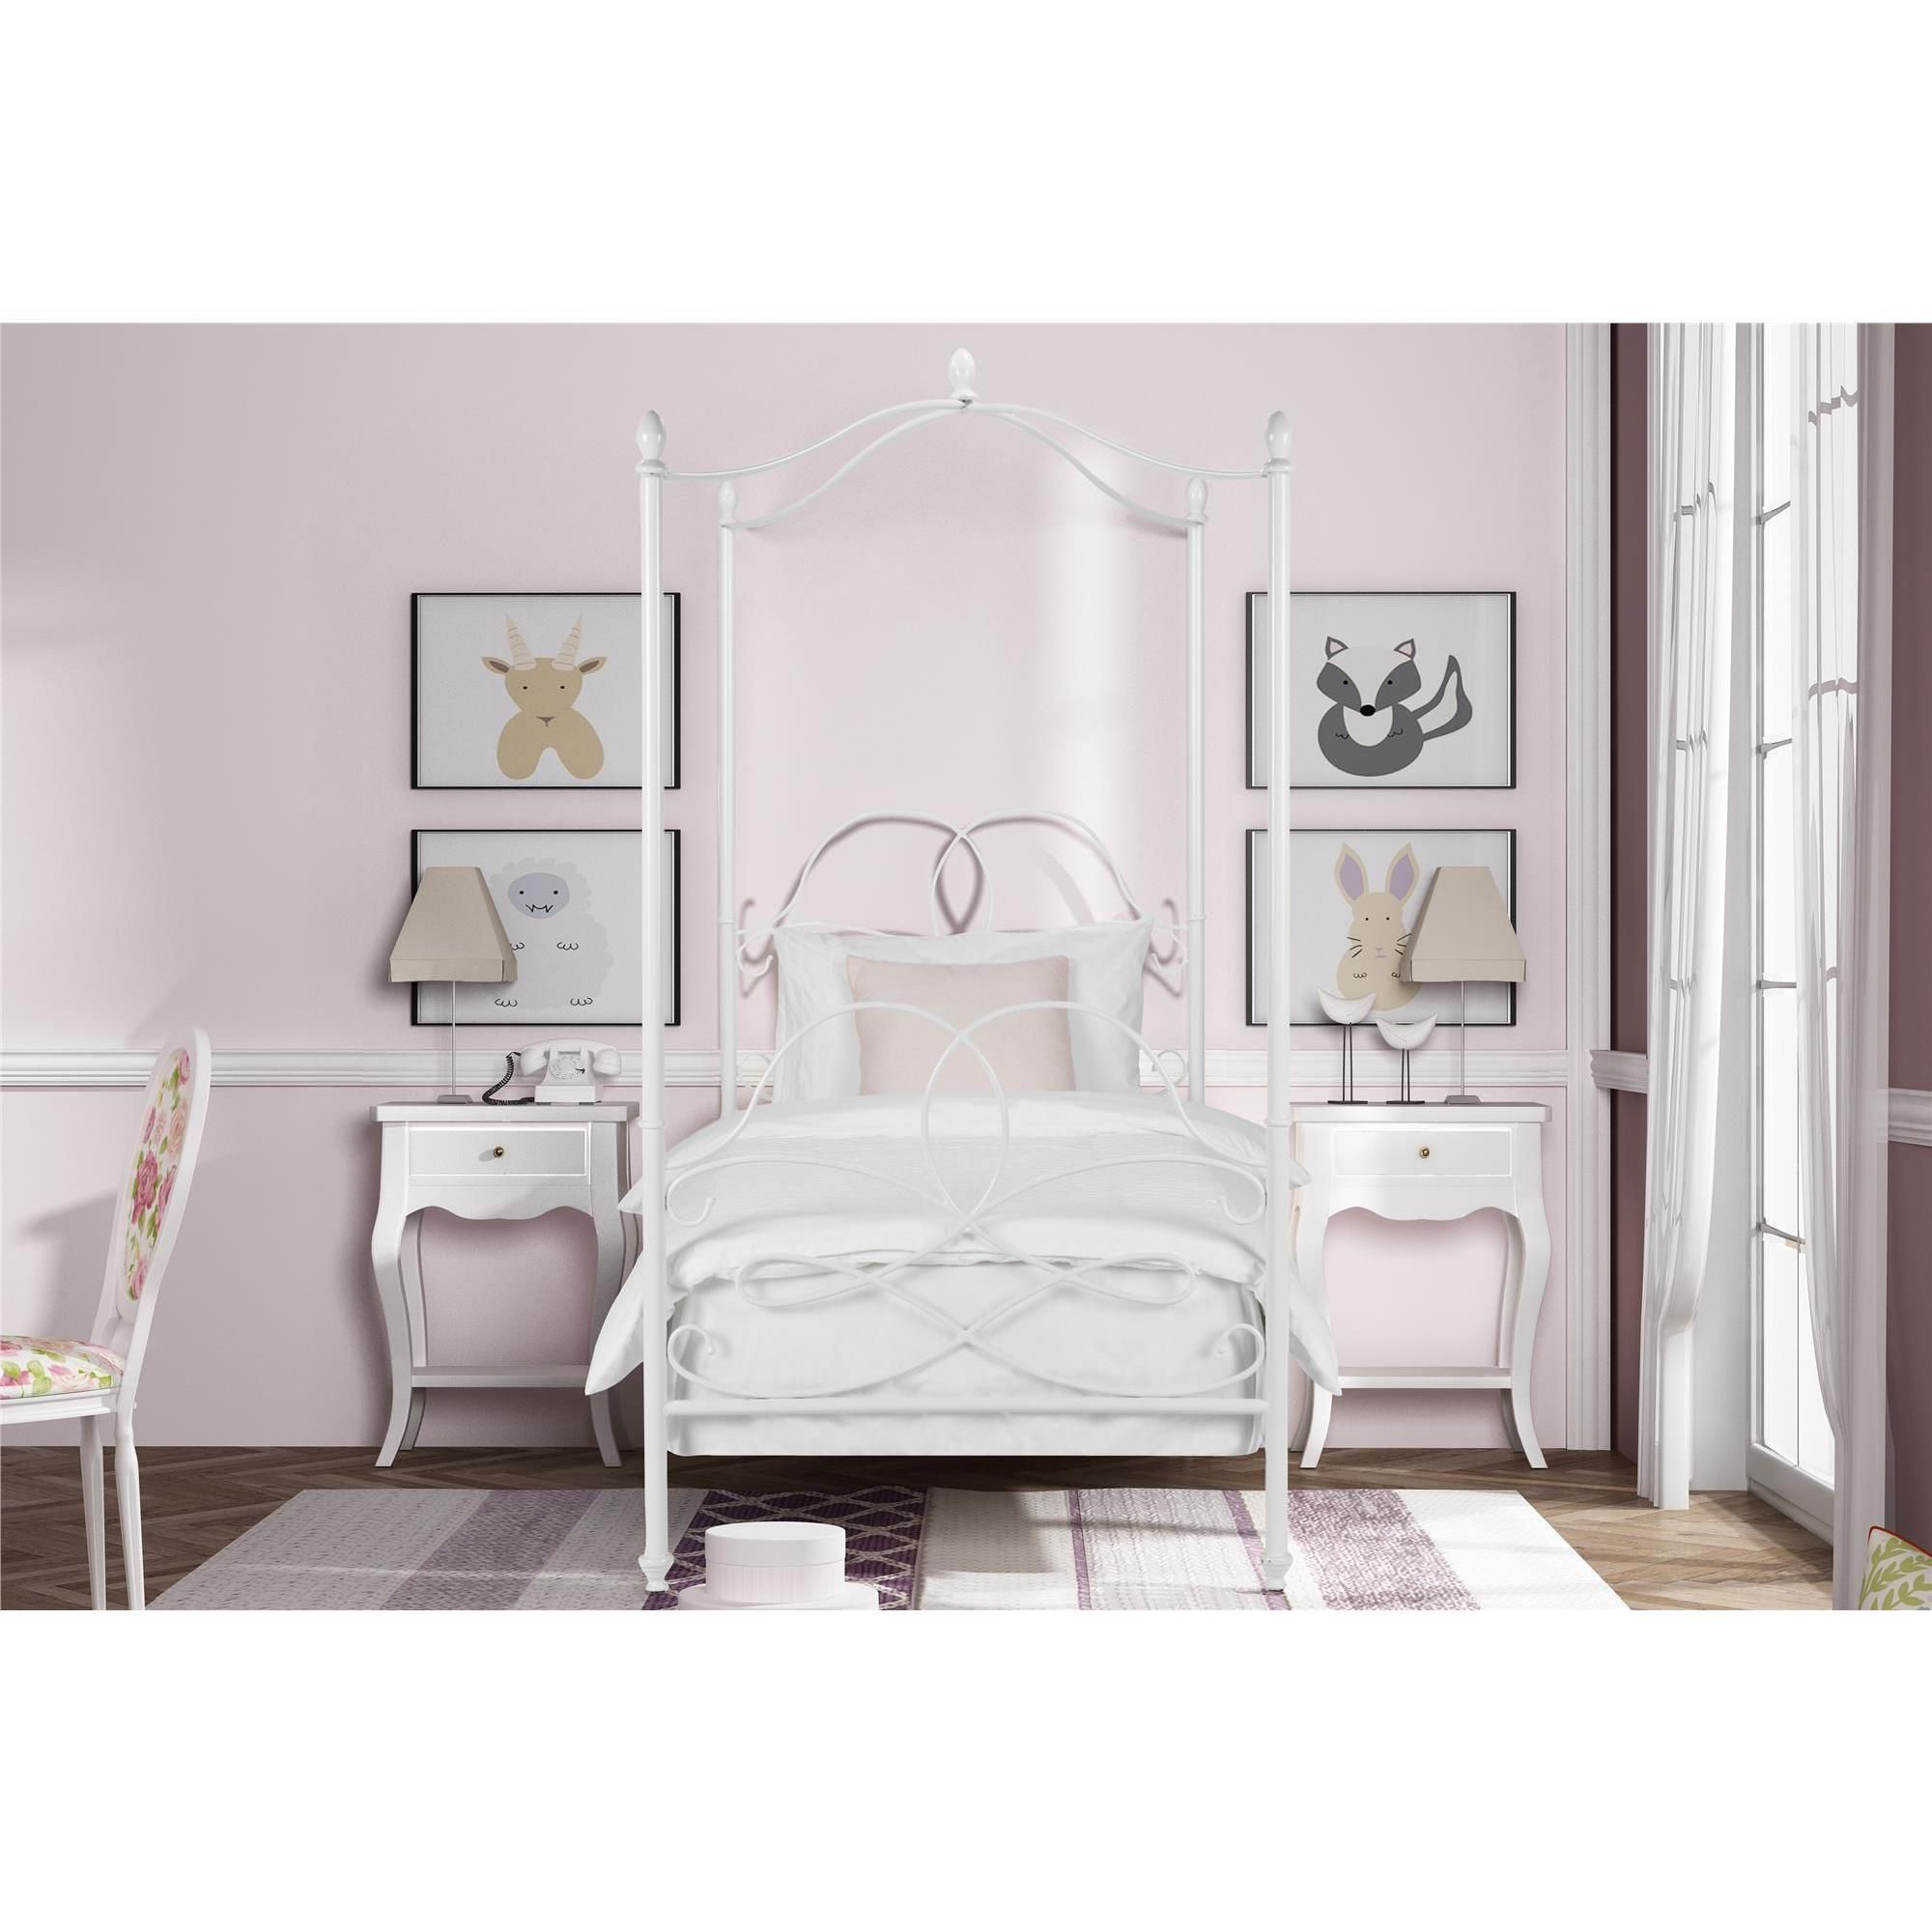 Avenue Greene Fancy White Metal Canopy Twin Bed (Twin canopy bed white)  sc 1 st  Pinterest & Avenue Greene Fancy White Metal Canopy Twin Bed (Twin canopy bed ...